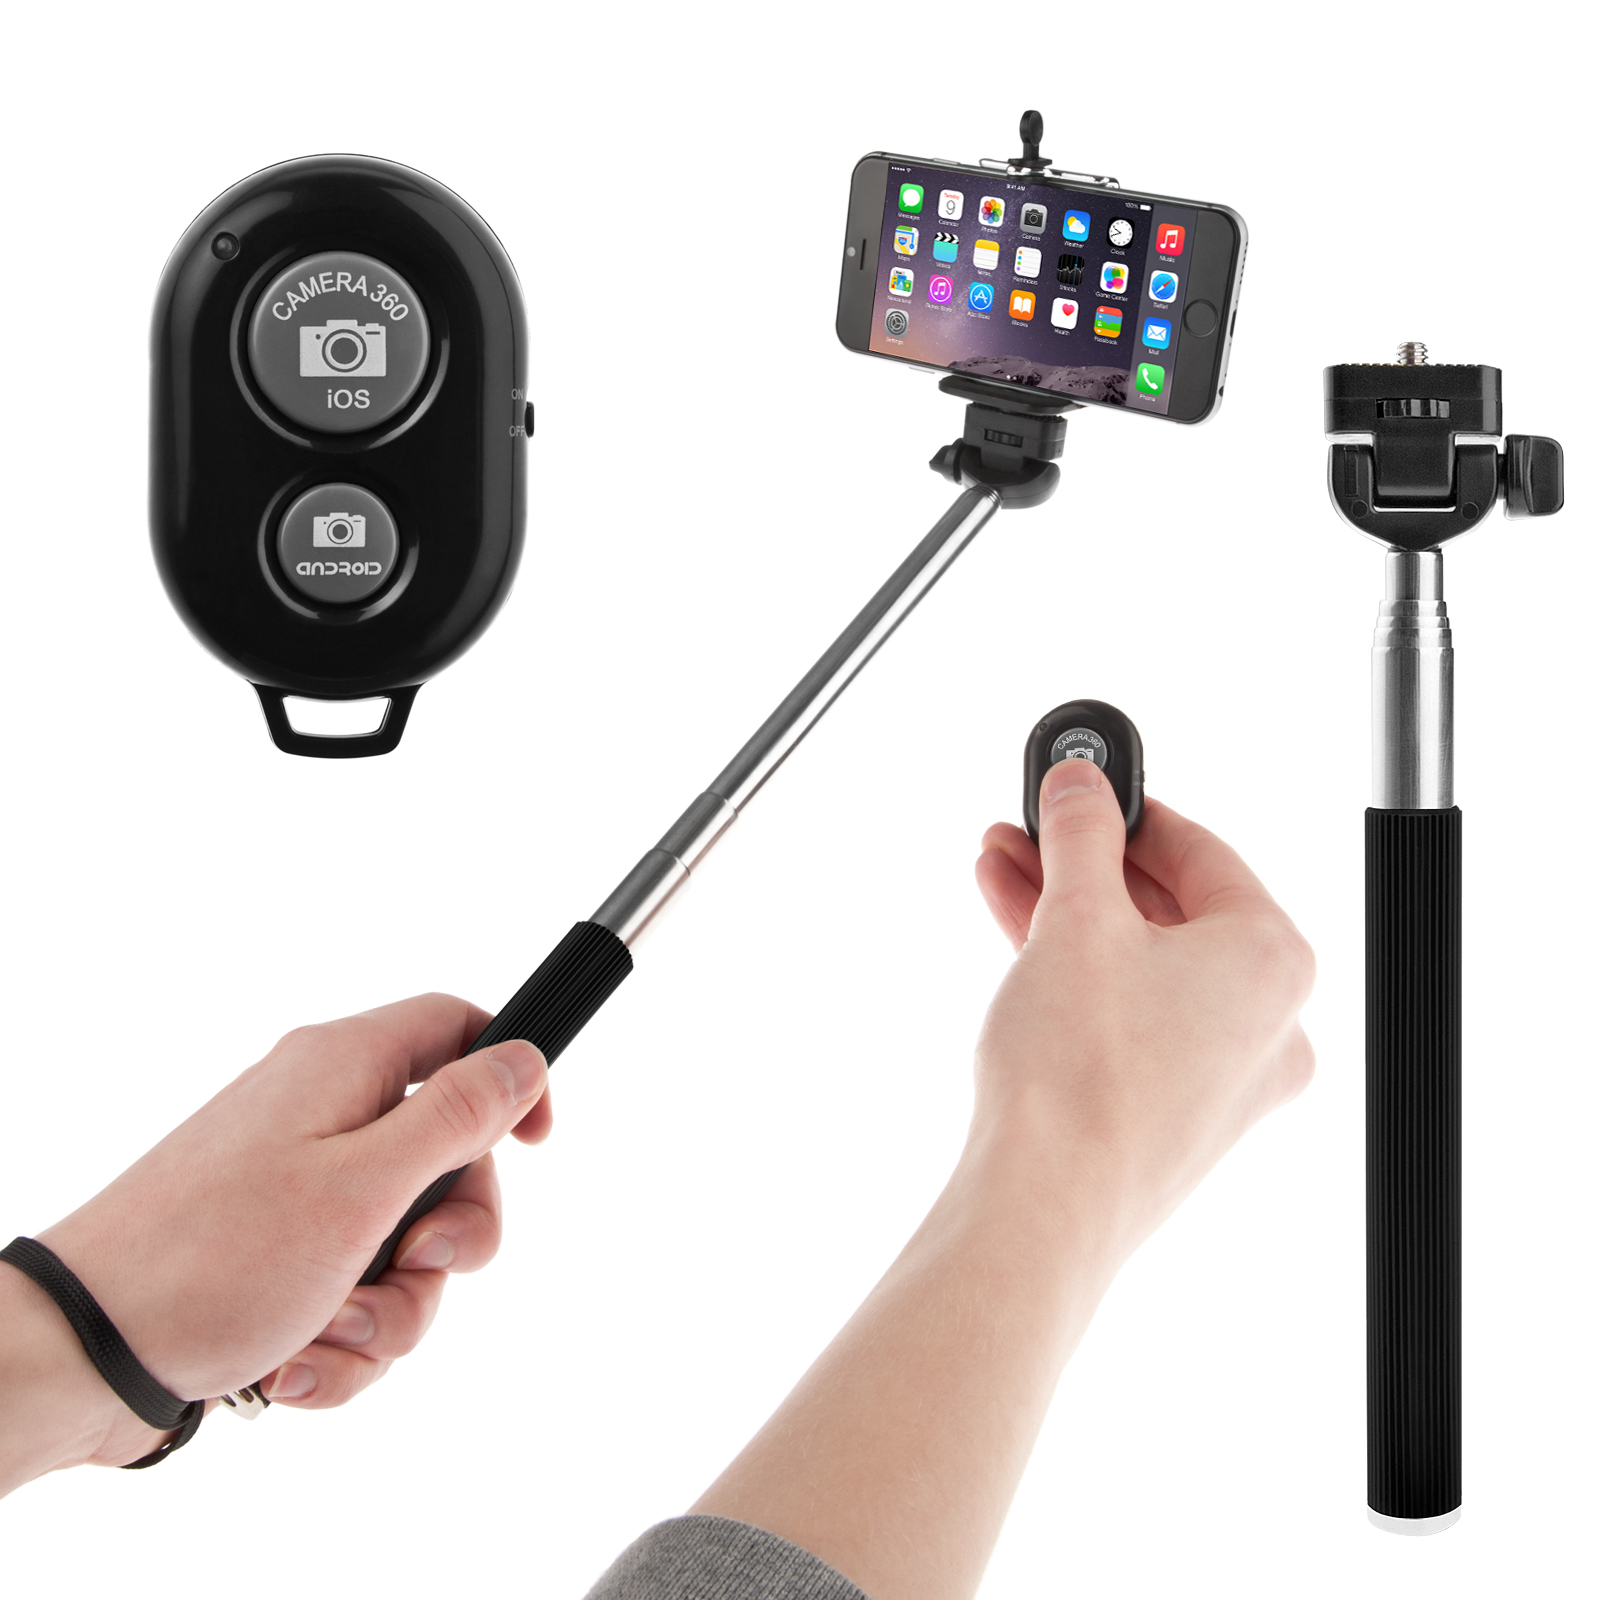 0046952 yousave selfie stick for mobile phones with bluetooth remote techfr. Black Bedroom Furniture Sets. Home Design Ideas